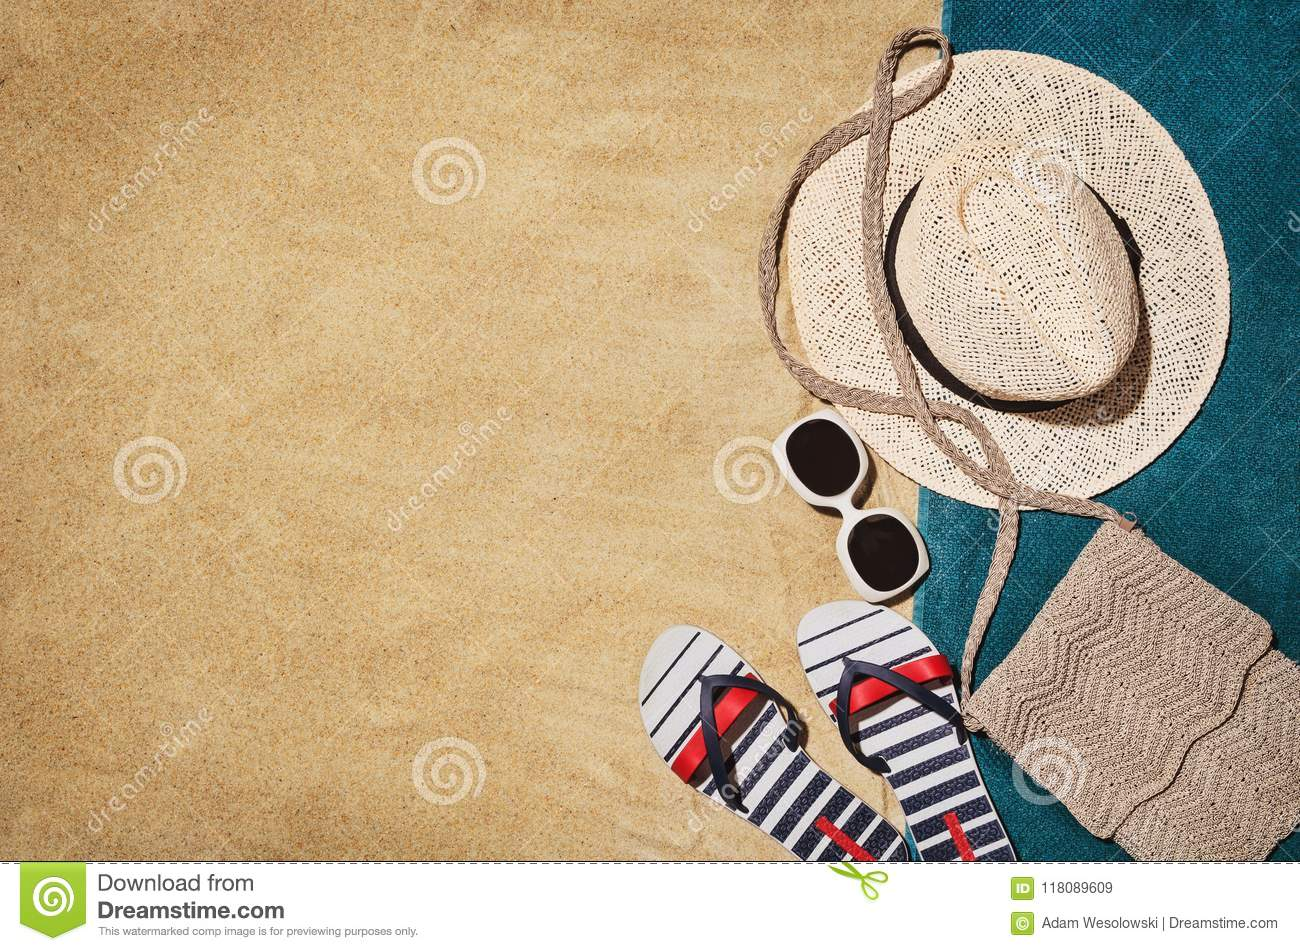 Top view towel on sandy beach. Background with copy space